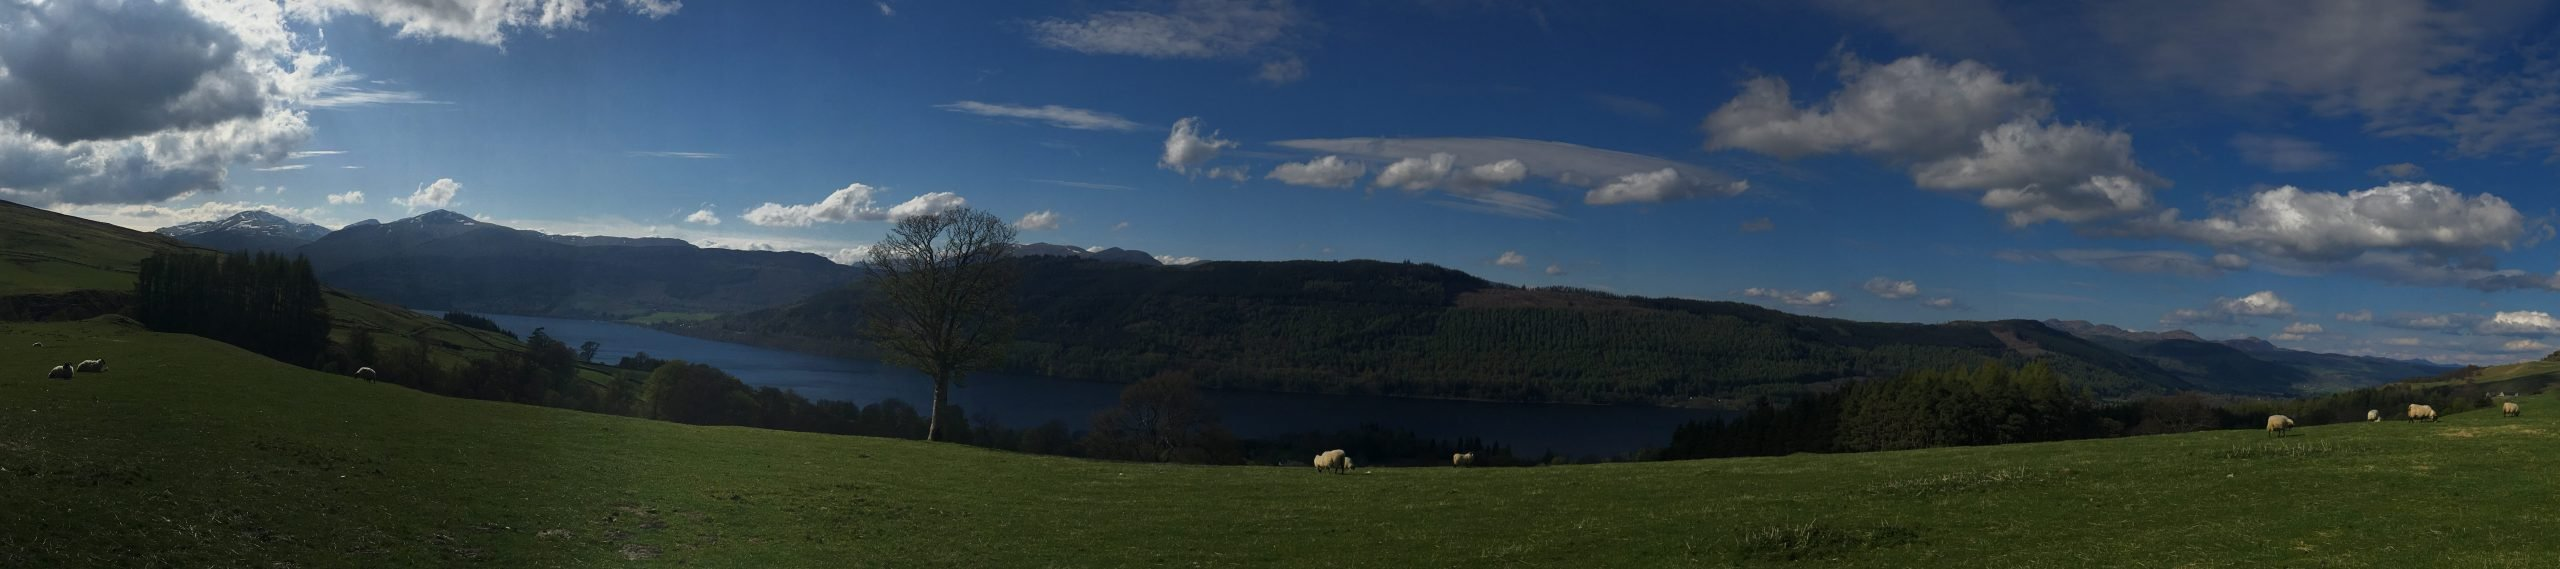 Loch Tay - a SUP-it List for stand up paddleboarding must